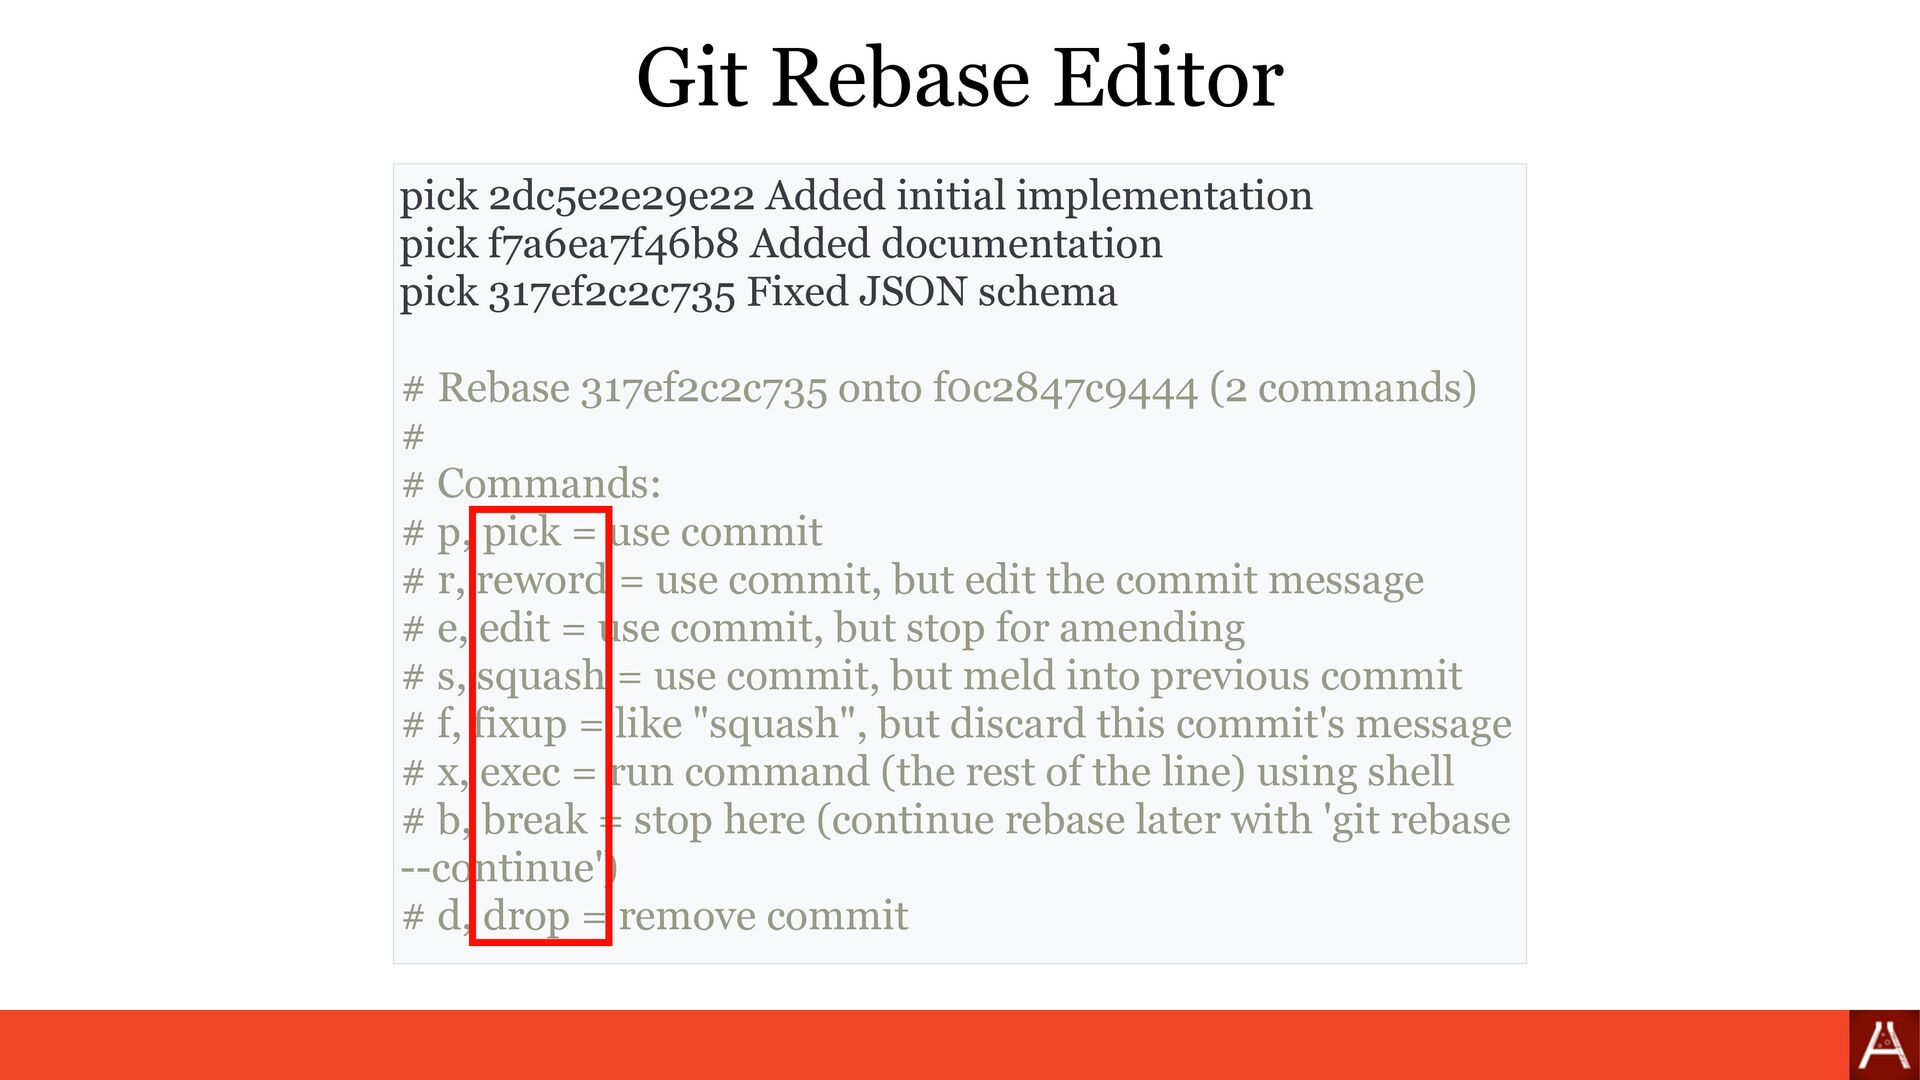 (advanced) GIT_EDITOR=true git rebase --interac...